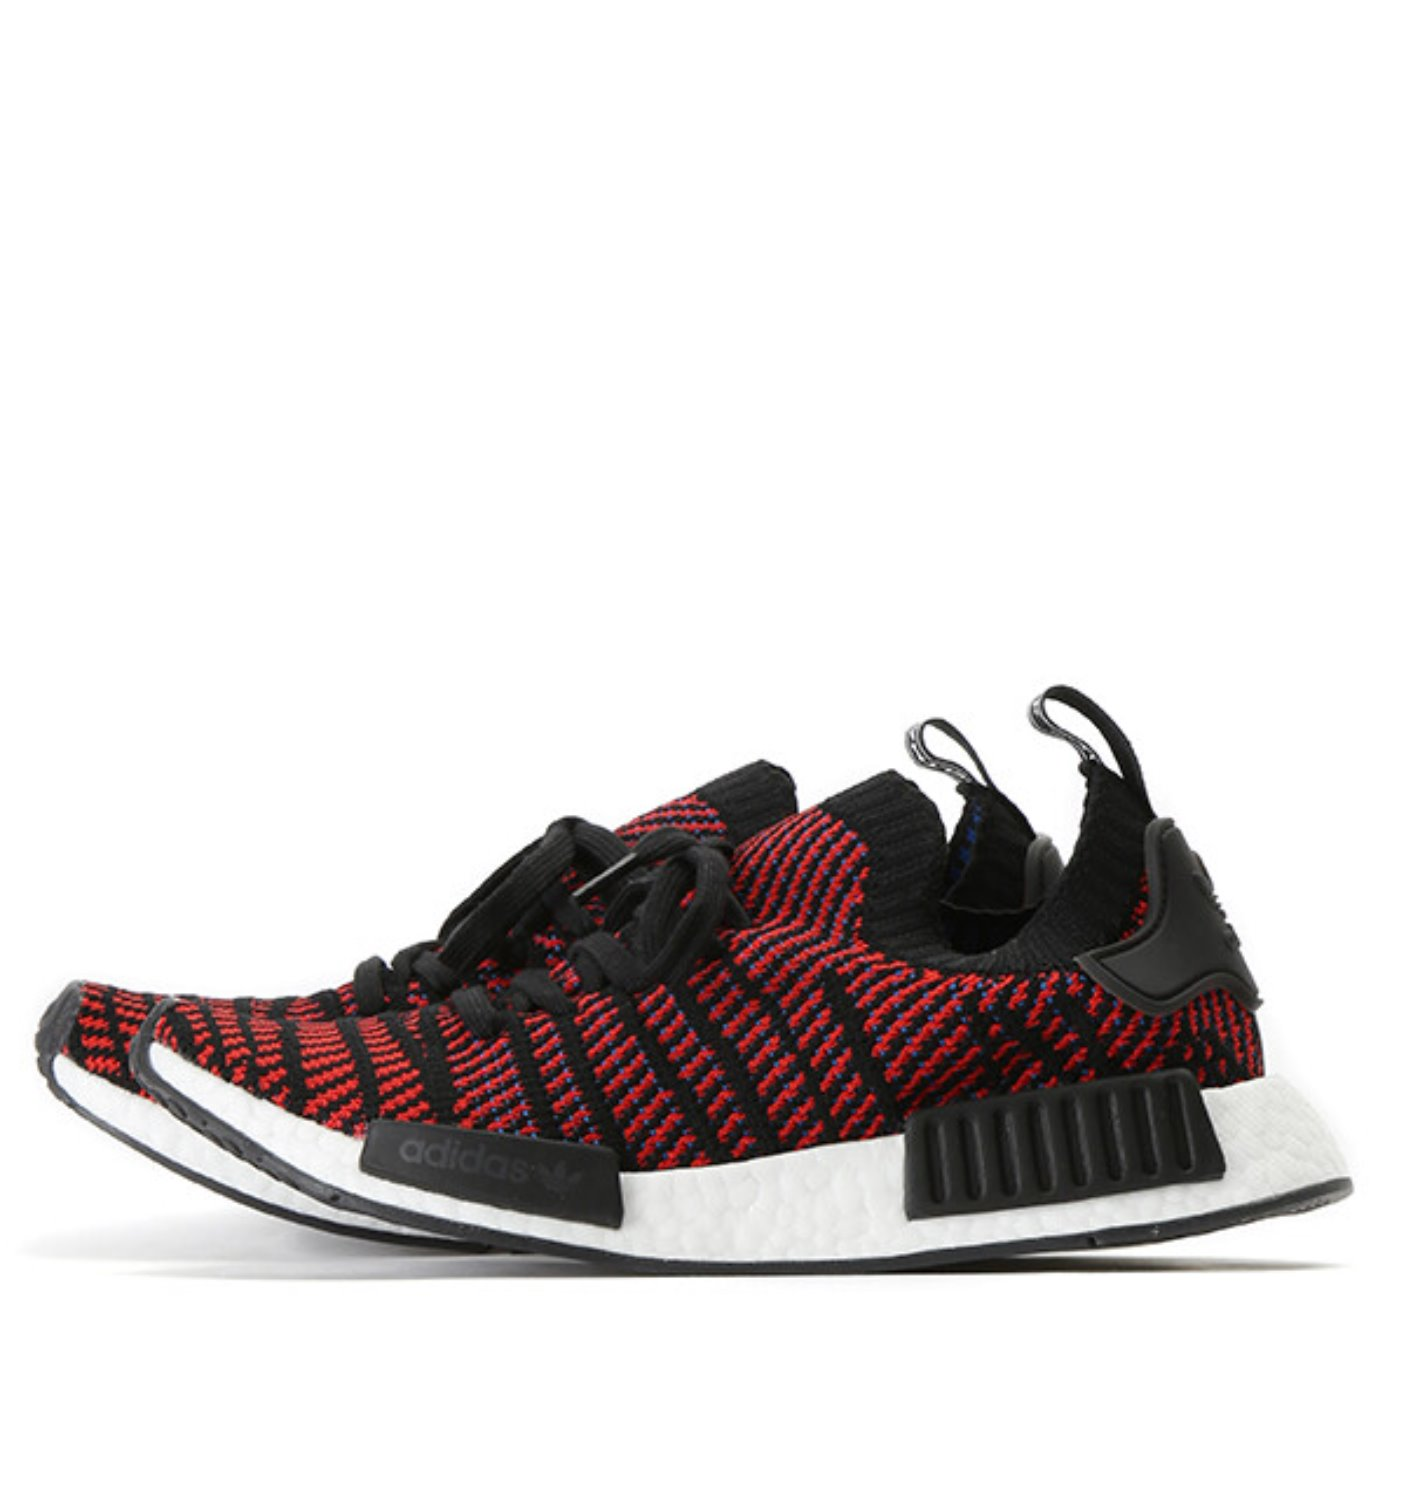 NMD R1 STLT PK RED/BLACK (CQ2385)